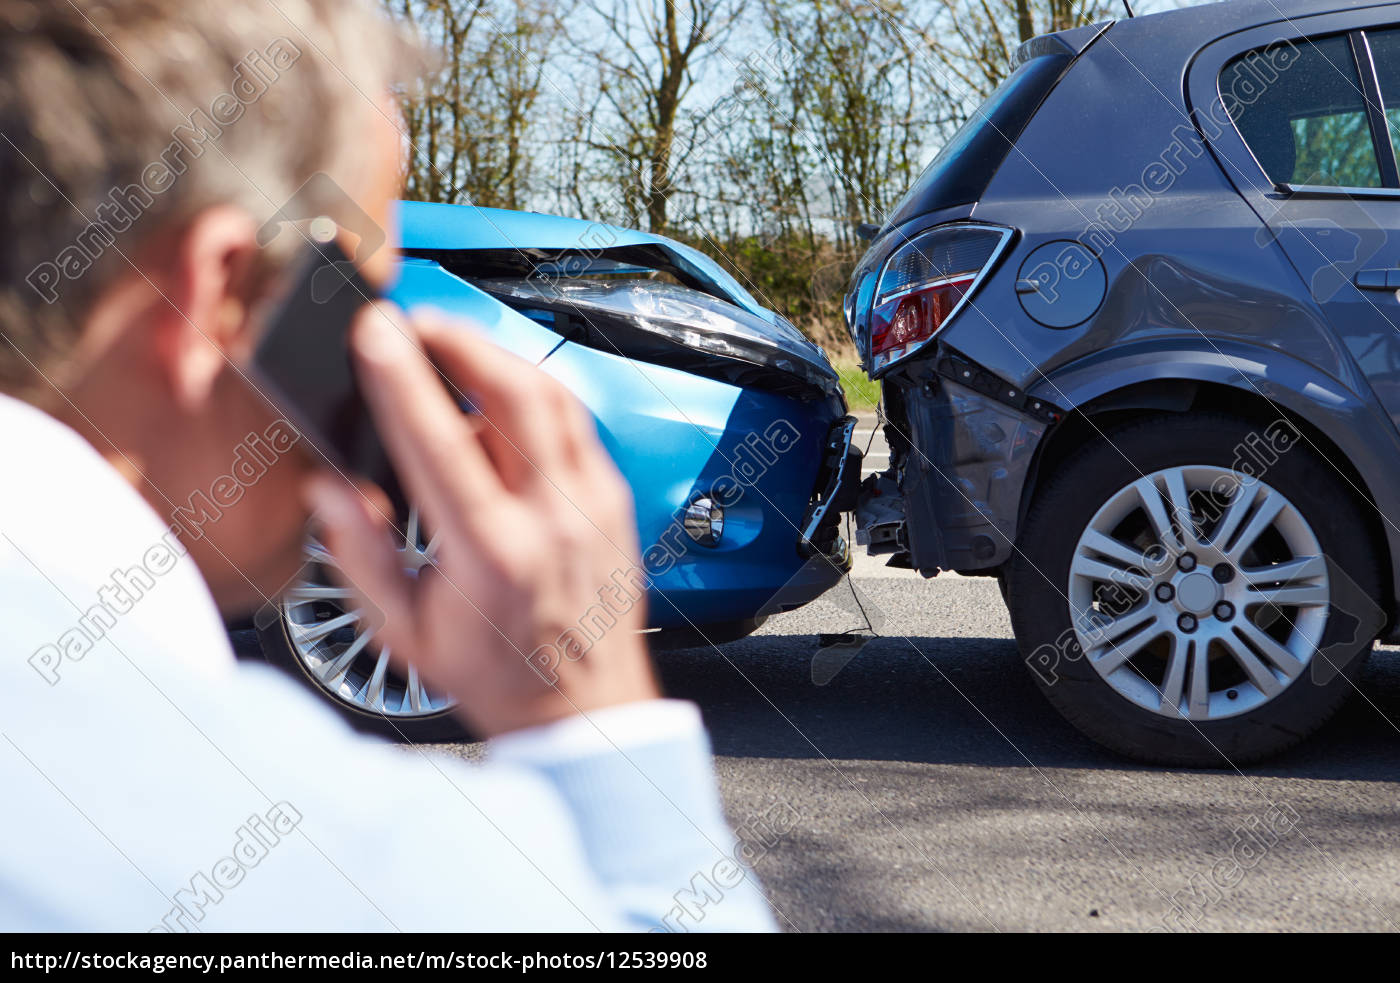 car, vehicle, insurance, car insurance, auto accidents, accident - 12539908